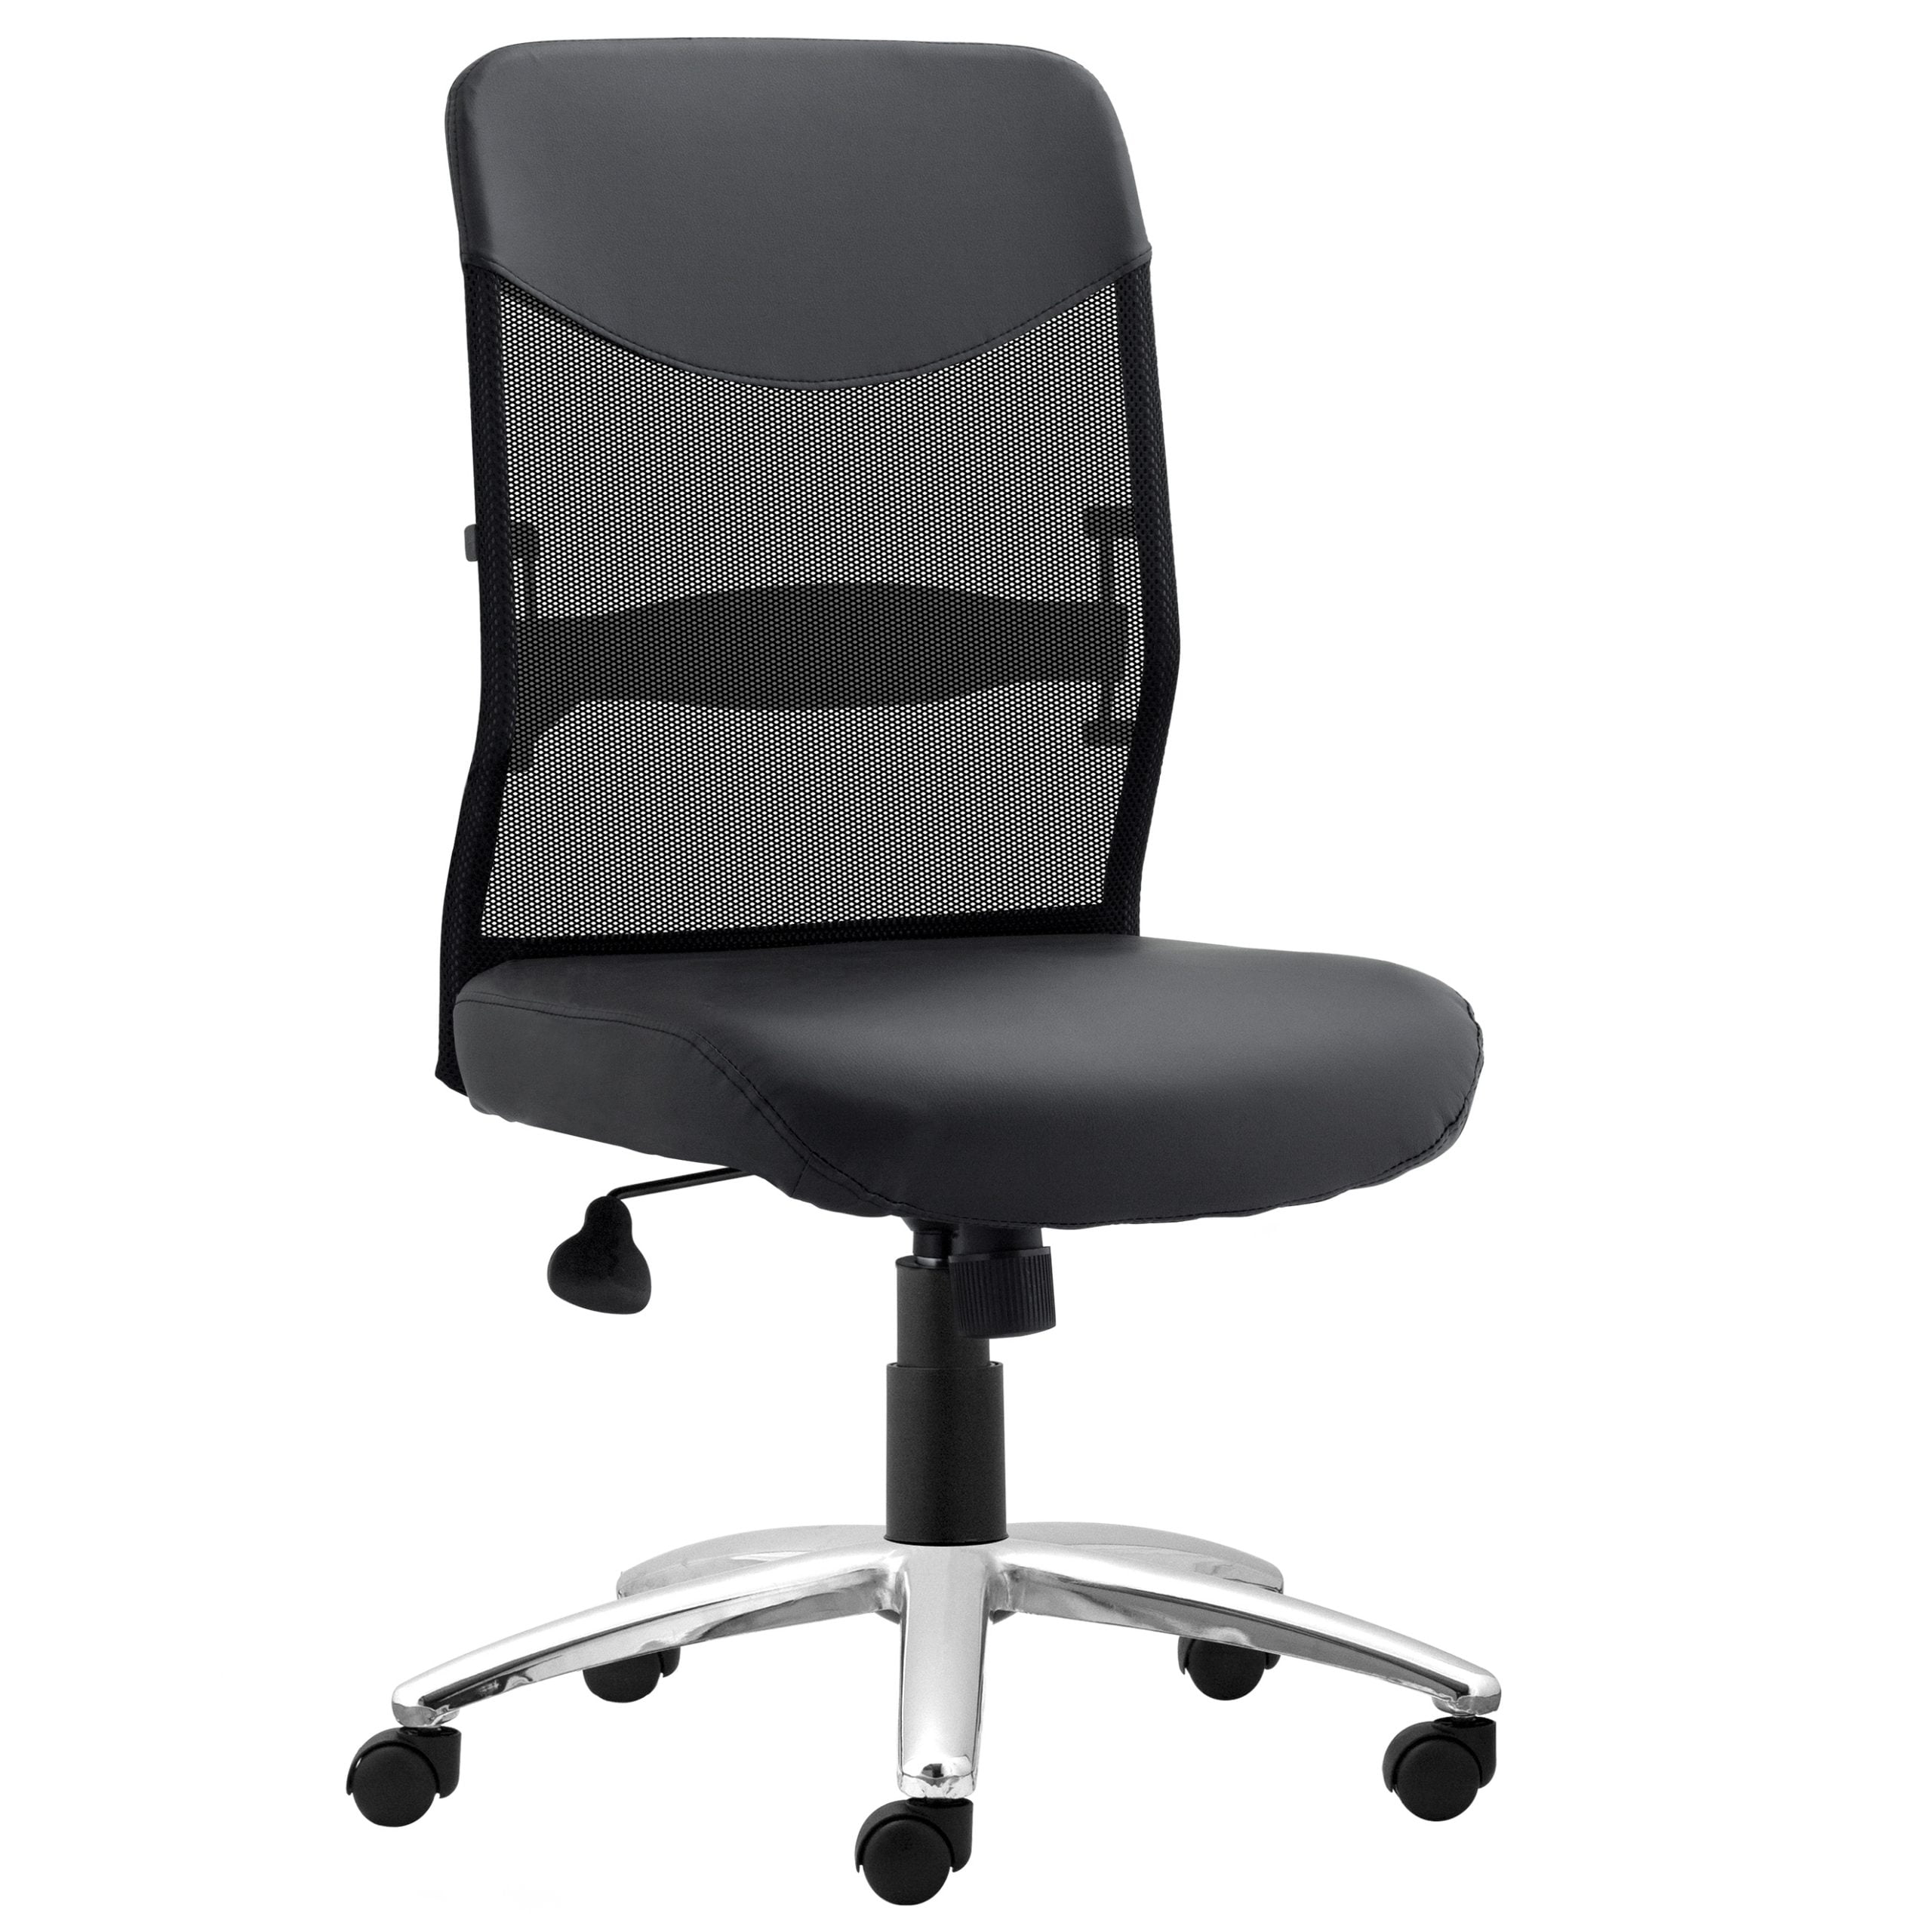 Capri II Armless Task Chair - Black